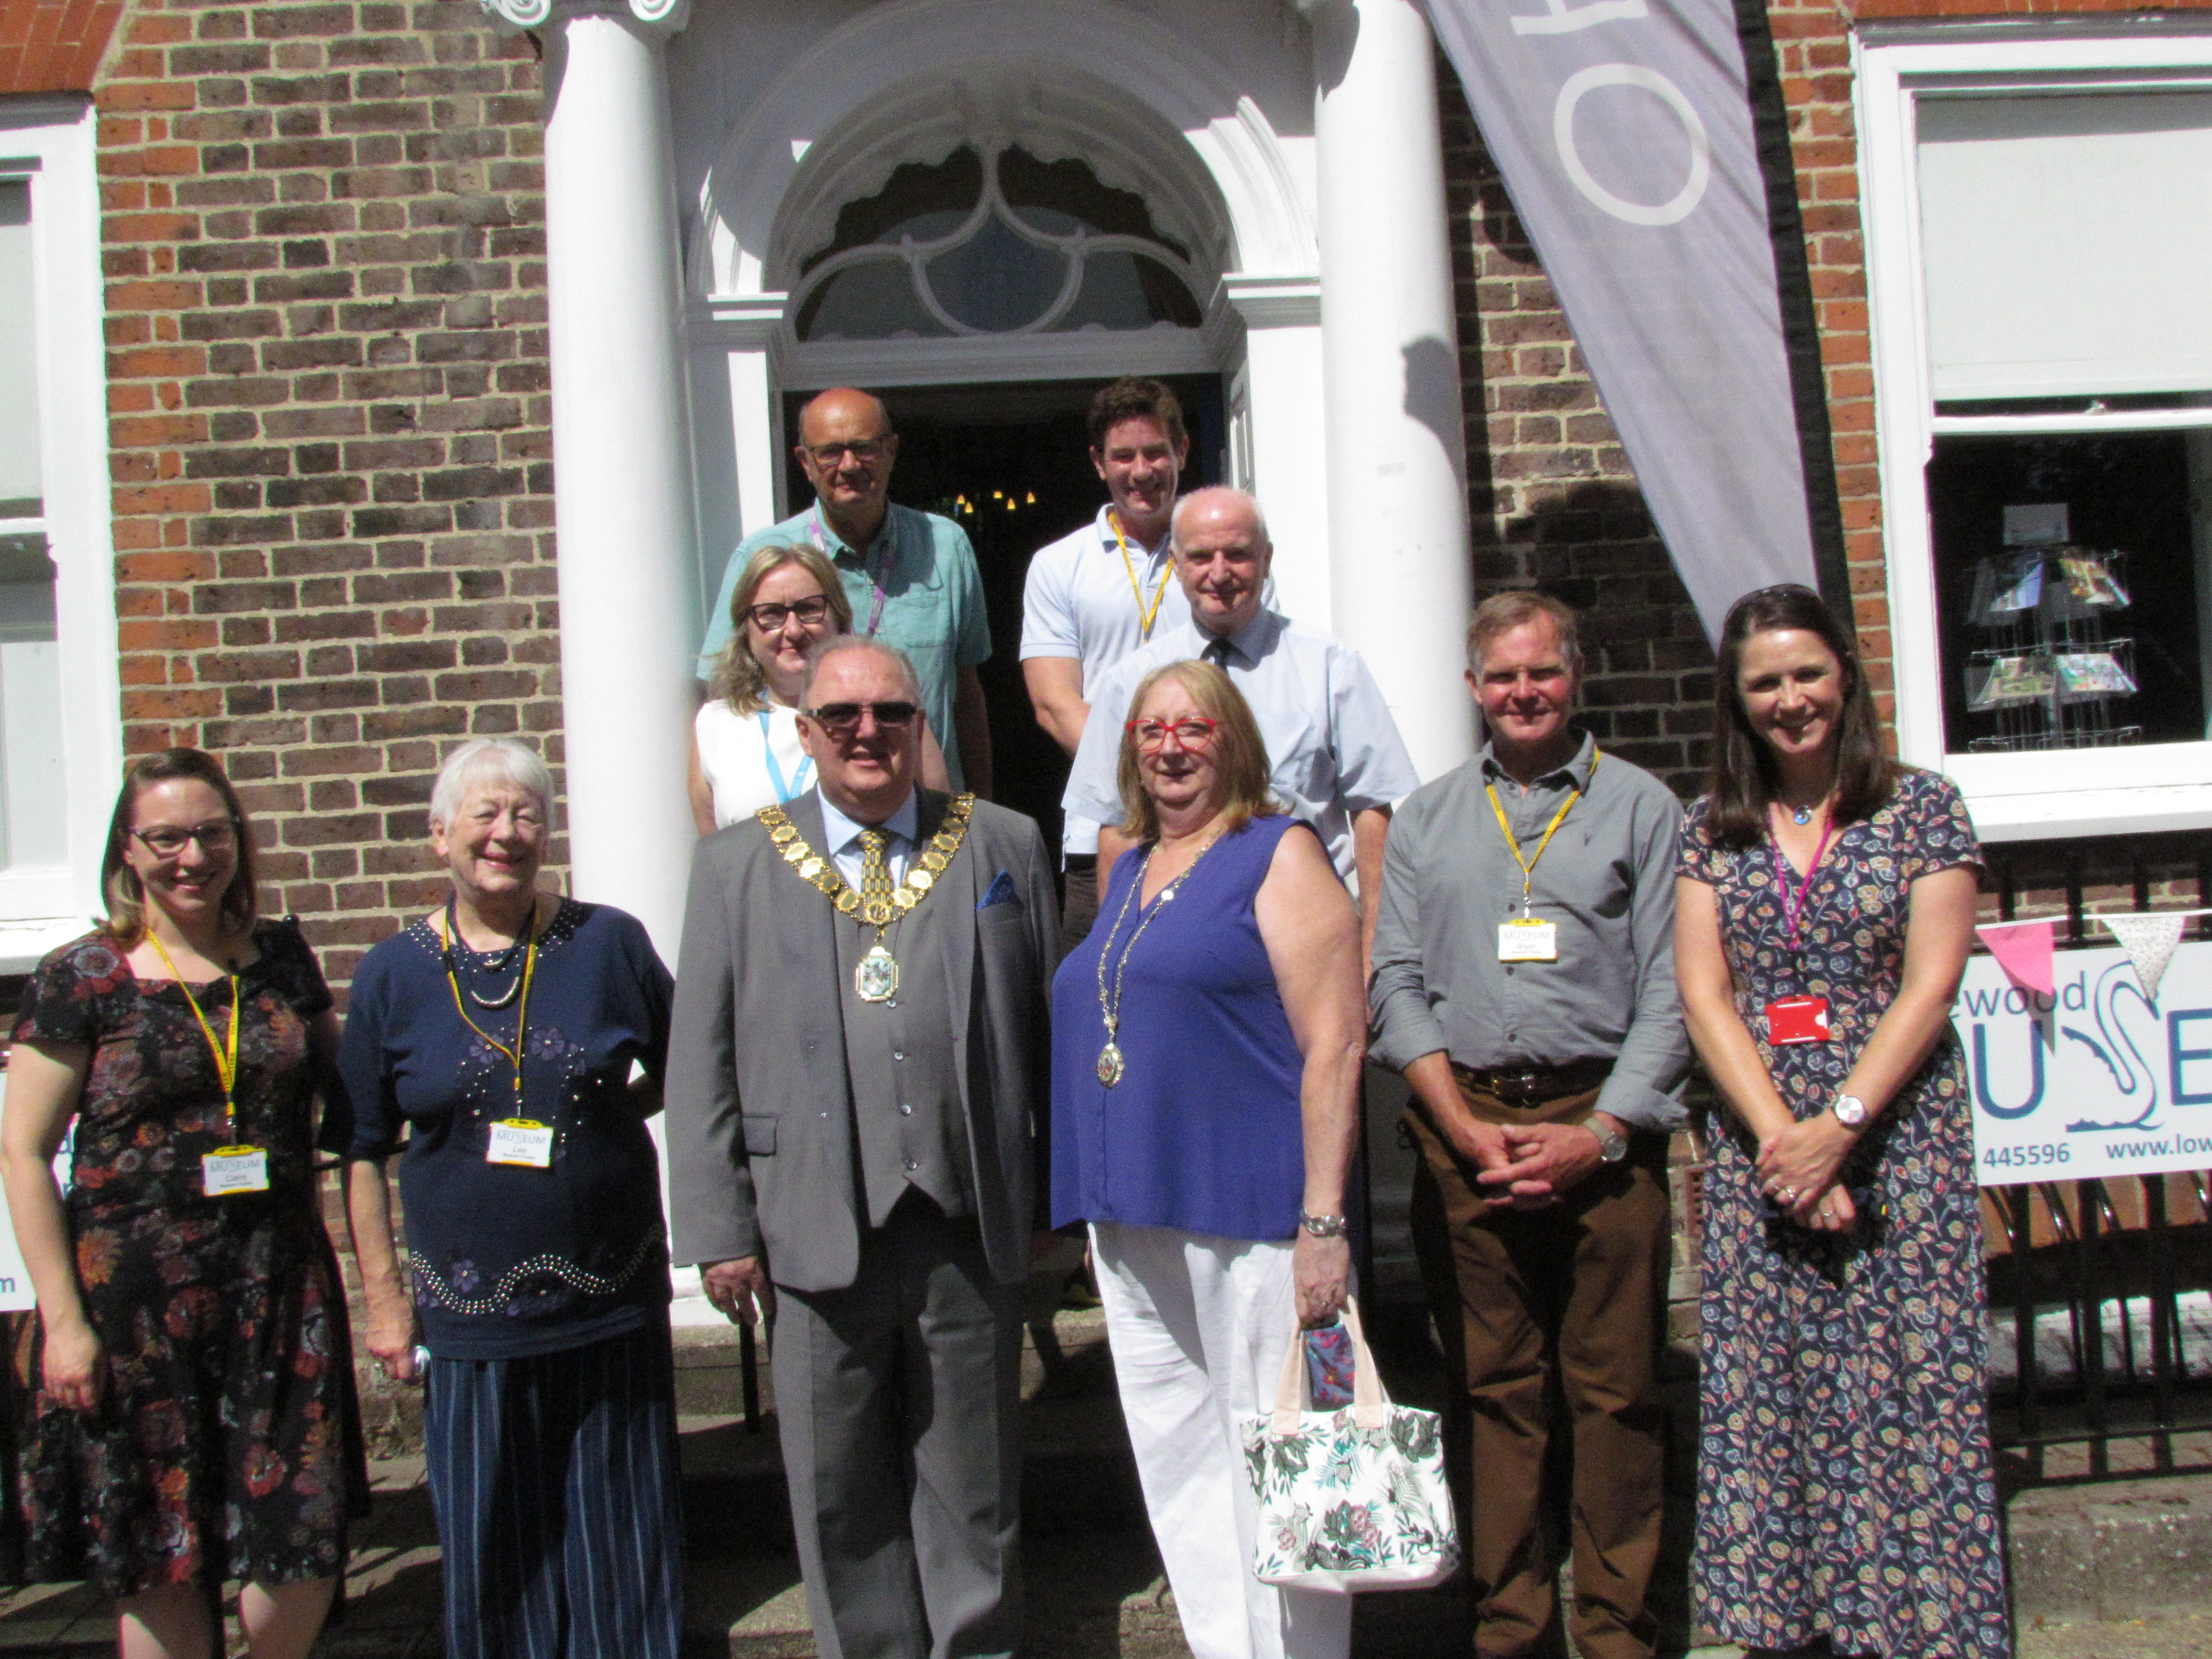 Some of the Lowewood Museum Trust board with the Mayor of Broxbourne